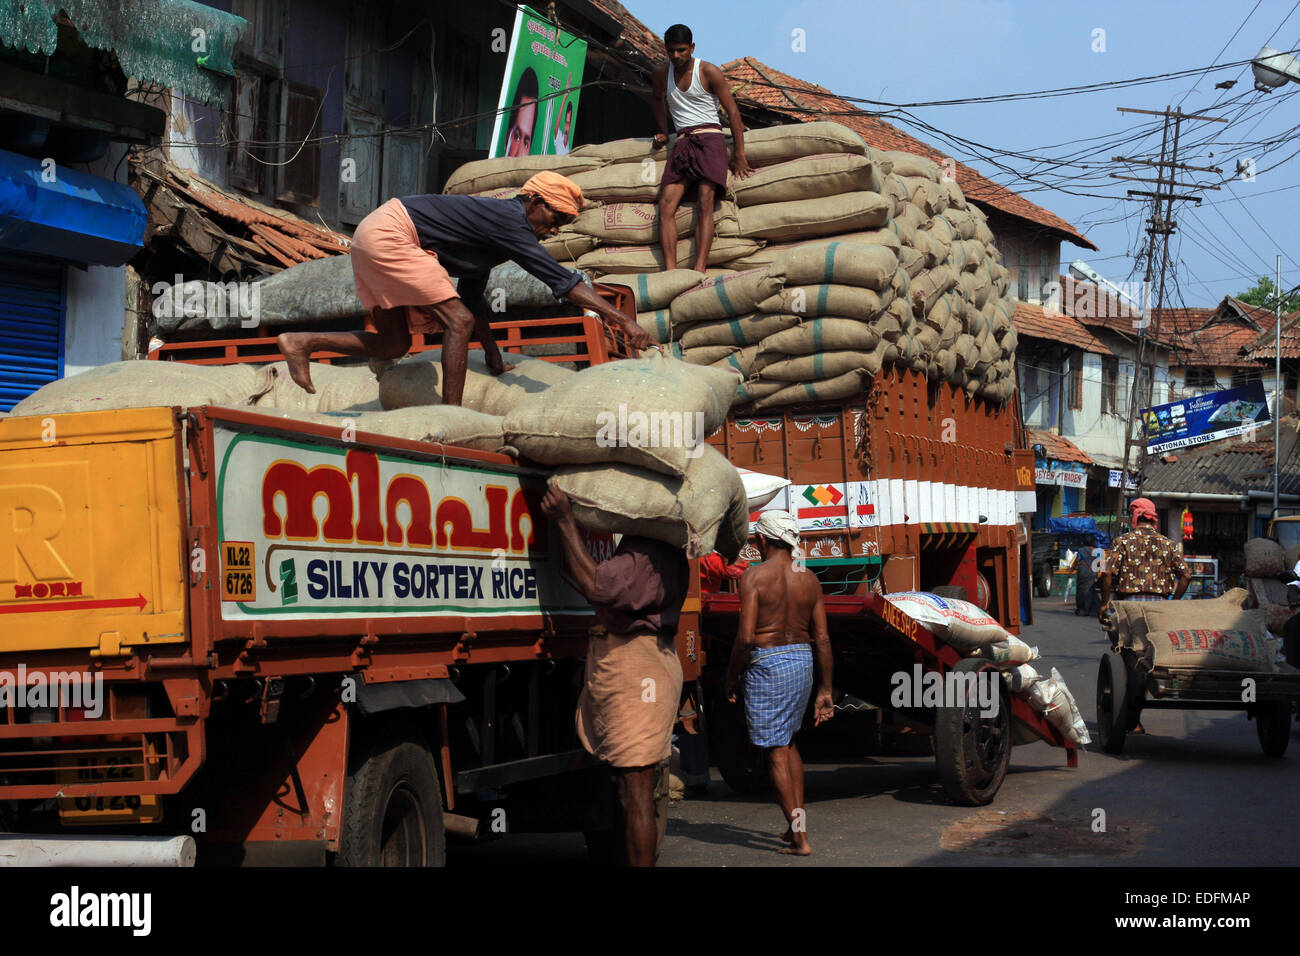 Men loading a truck with sacks of rice on Bazaar Road, Fort Cochin, India - Stock Image